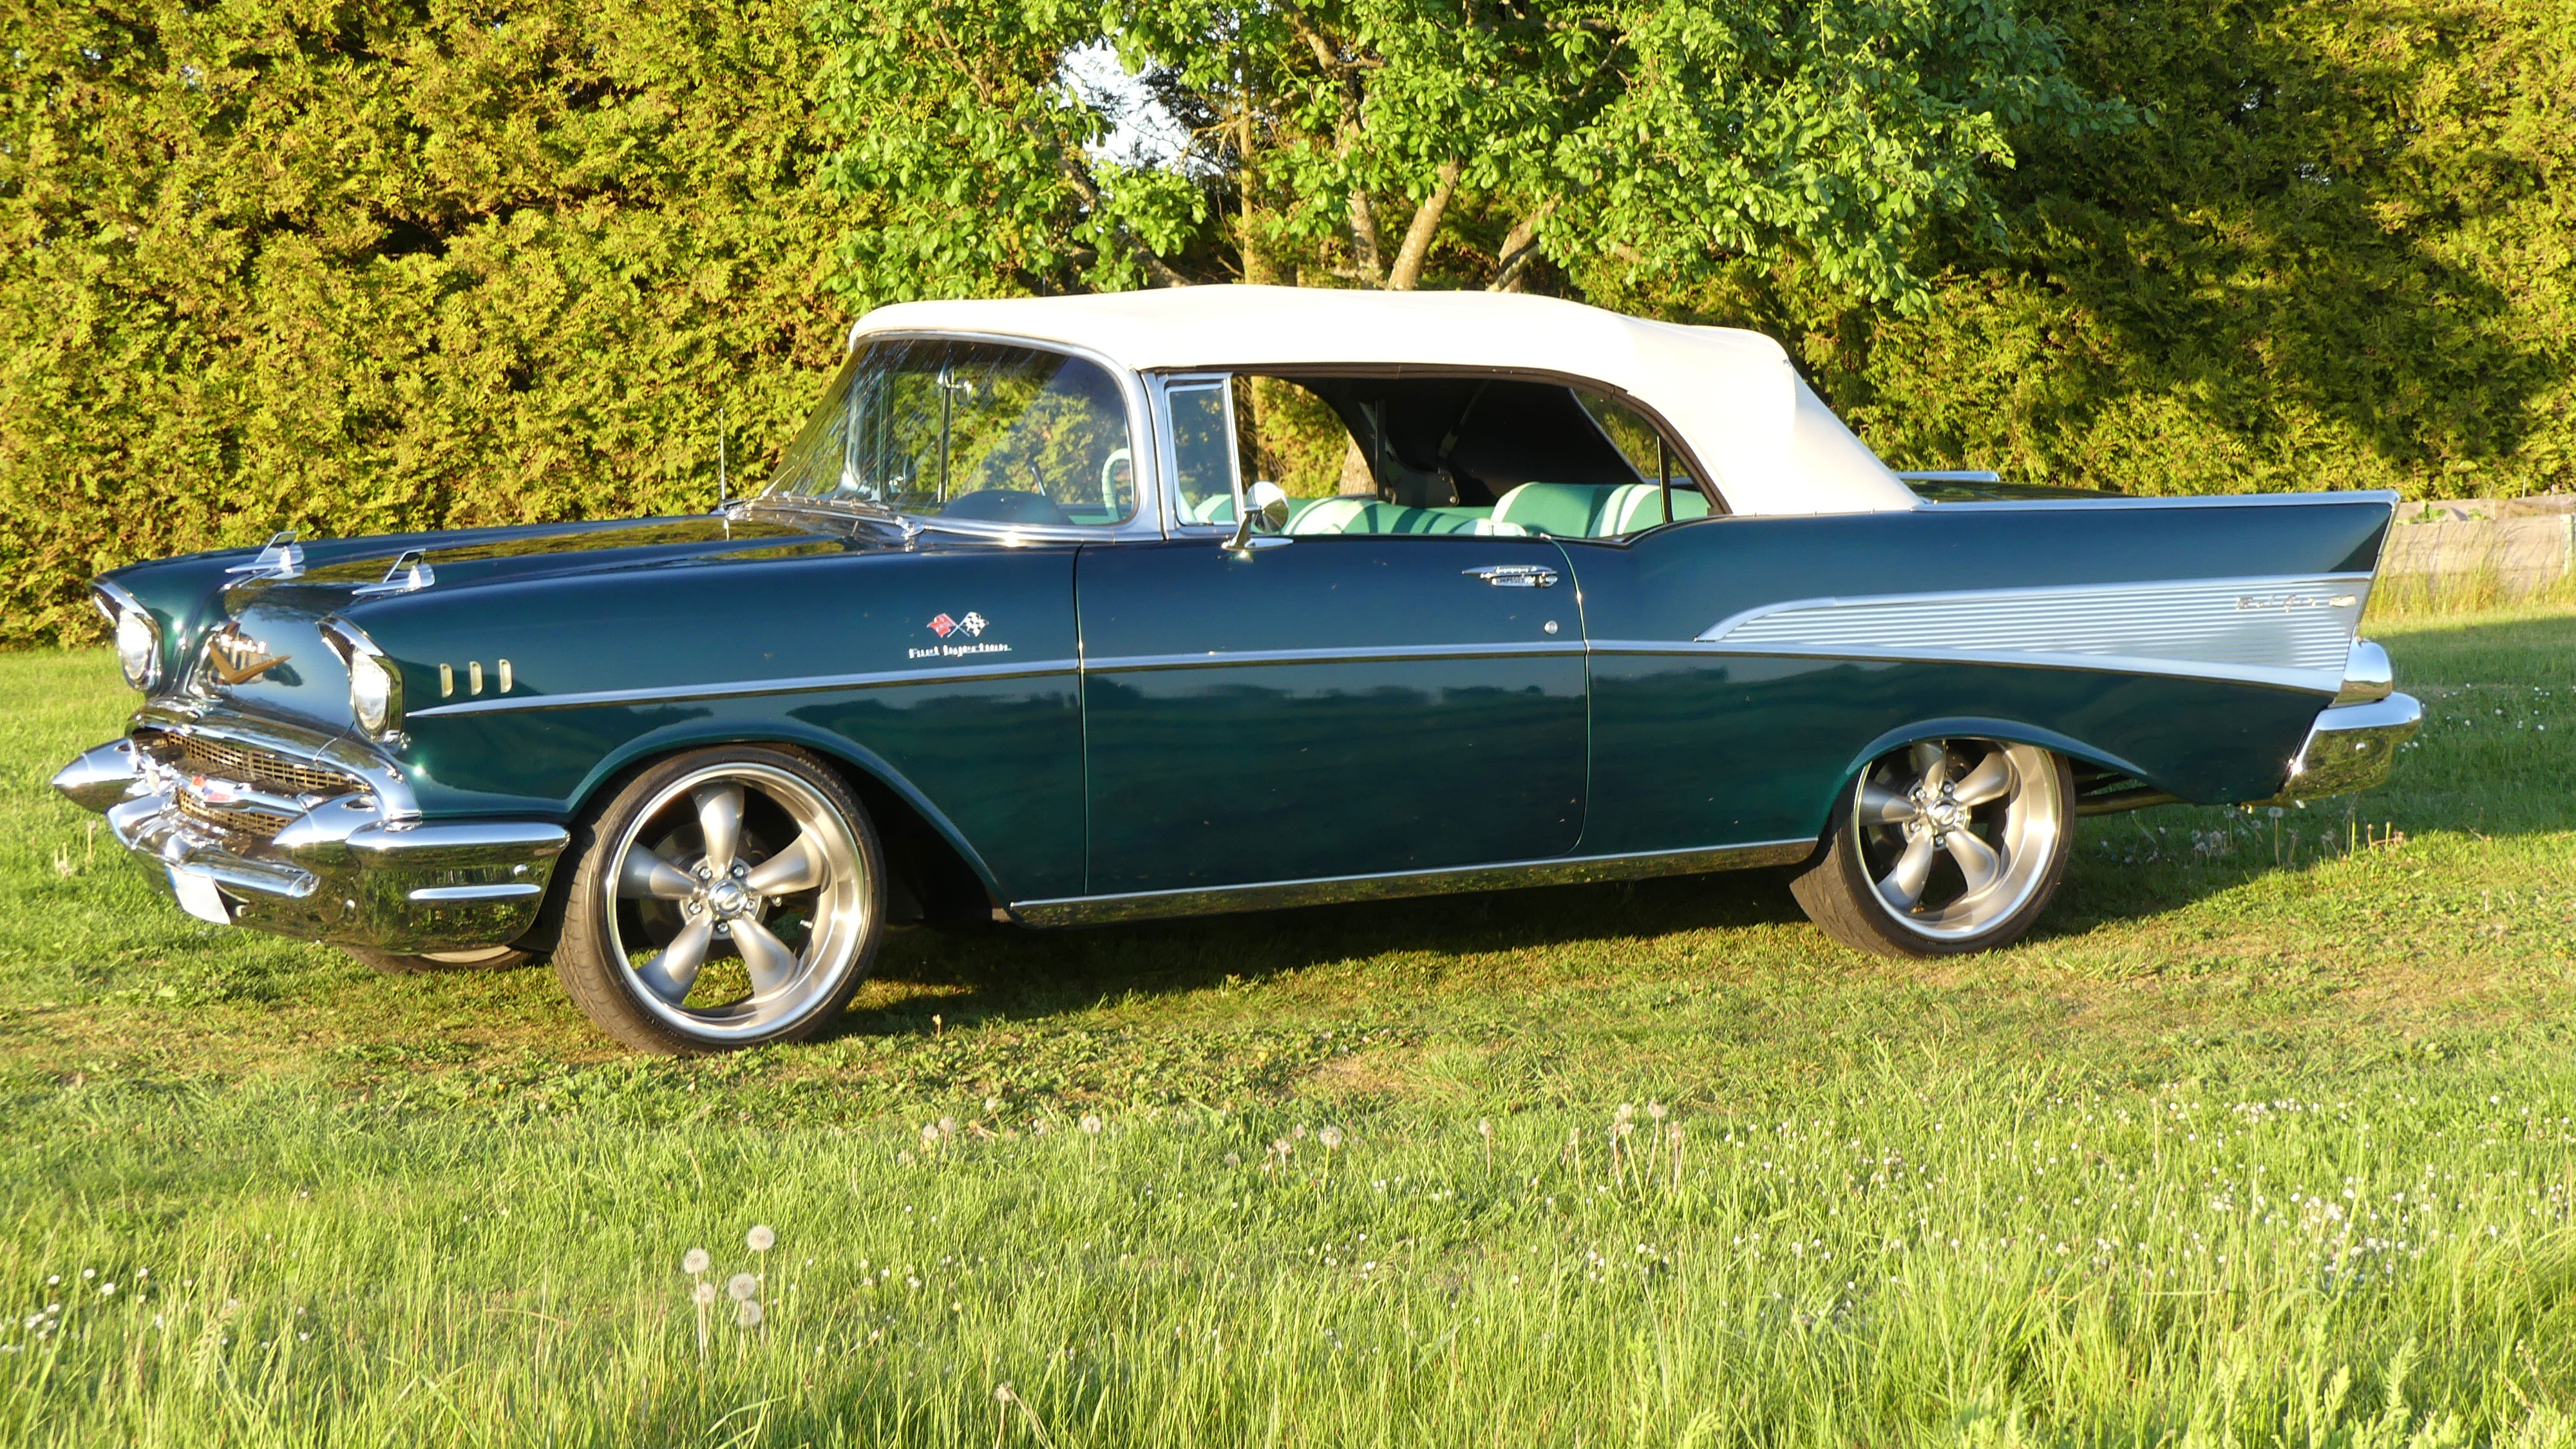 chevrolet bel air 1957 convertible classic cars south. Black Bedroom Furniture Sets. Home Design Ideas